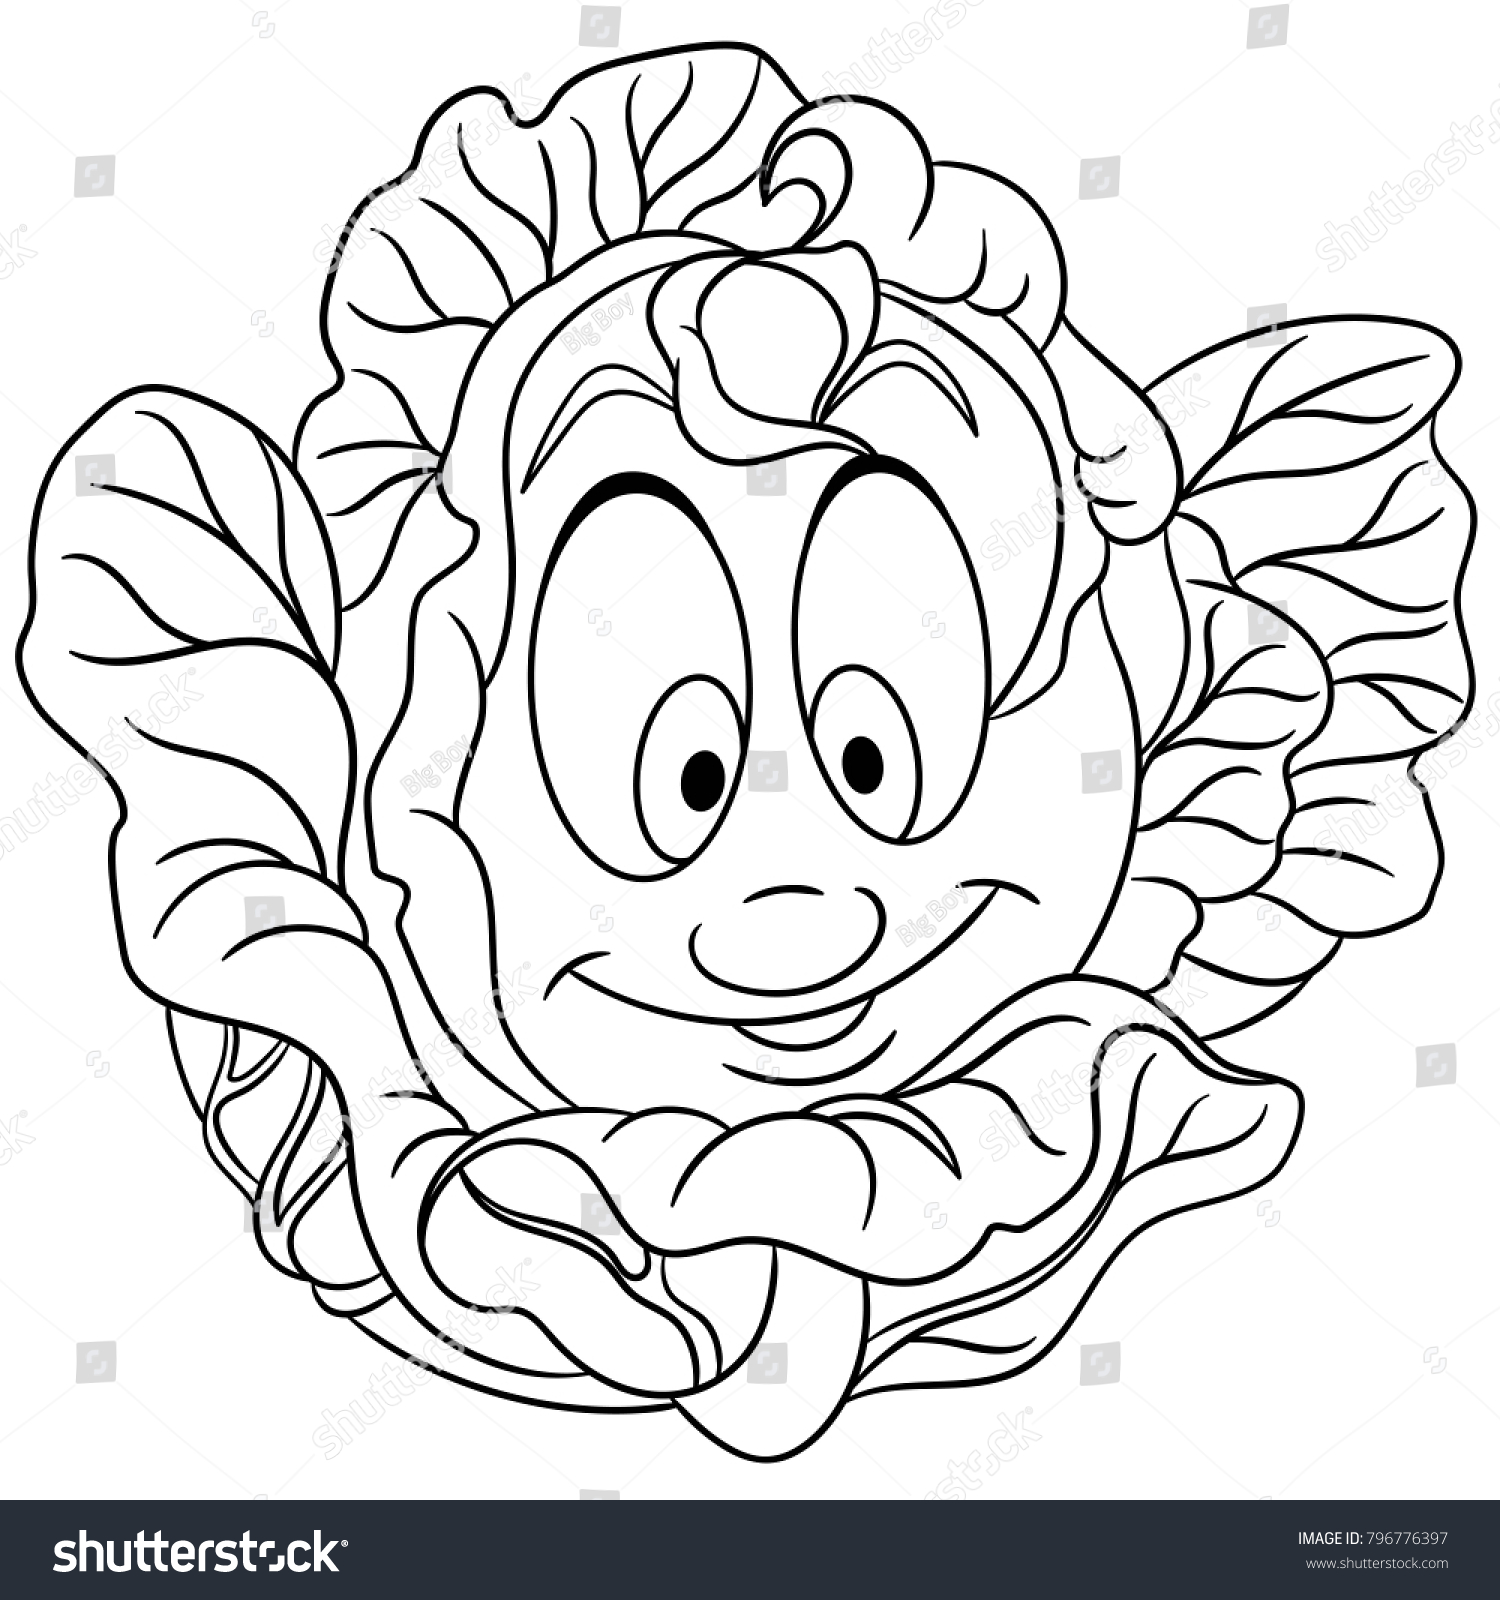 Coloring Page Coloring Book Cartoon Cabbage Stock Vector (Royalty ...